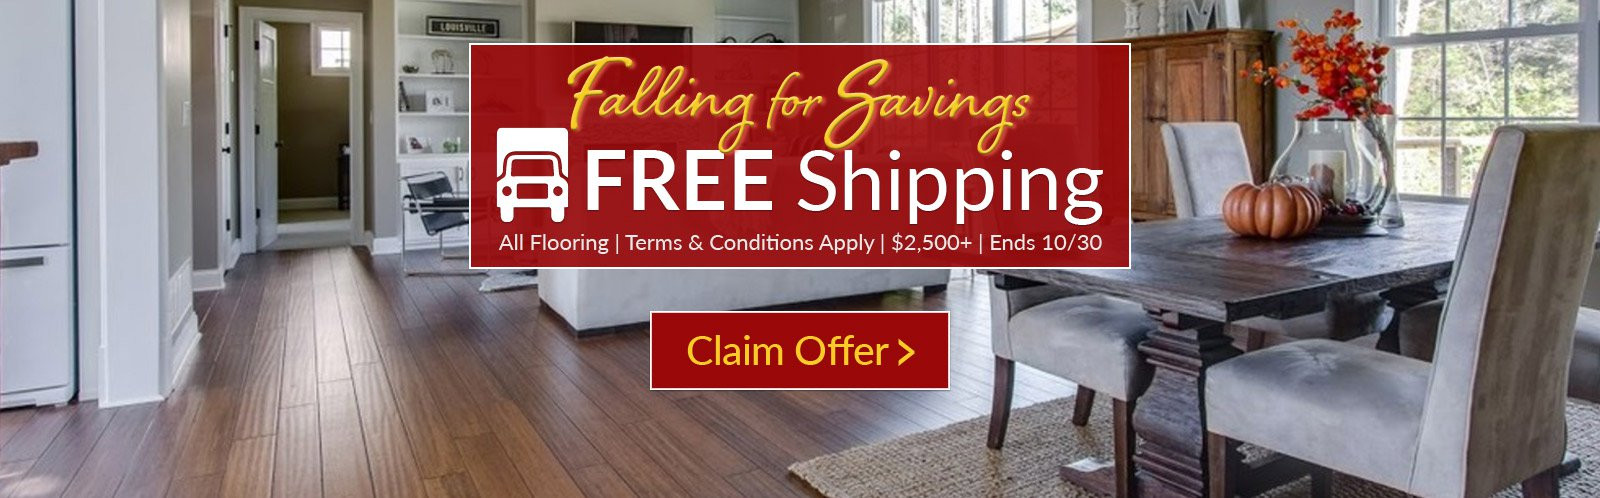 Hardwood Floor Installation Barrie Of Green Building Construction Materials and Home Decor Cali Bamboo In Your Shopping Cart is Empty